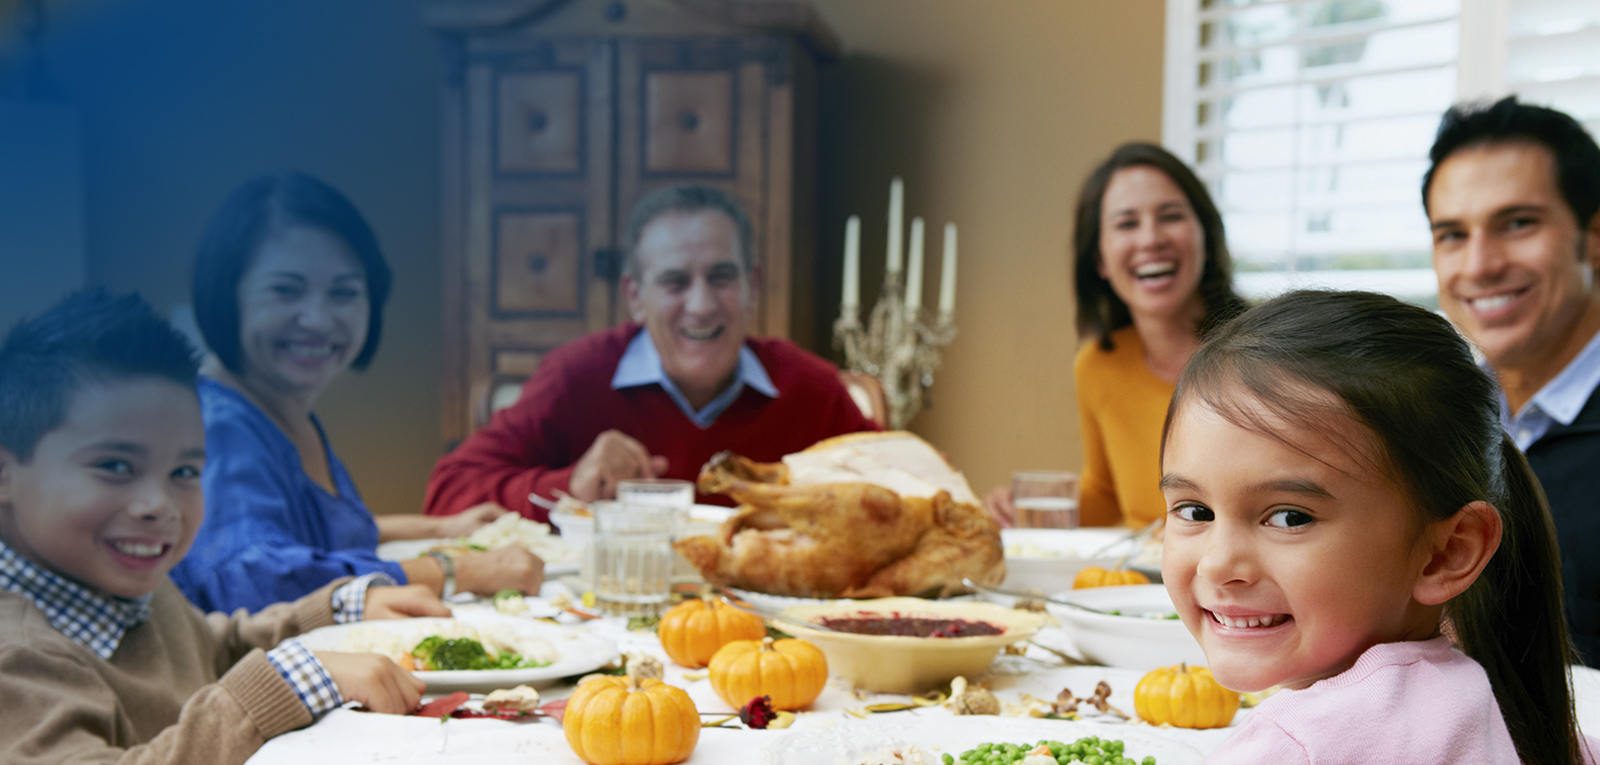 https://www.dutchpoint.org/images/default-source/Homepage-Banners/dp-thanksgiving-bnr.jpg?sfvrsn=2